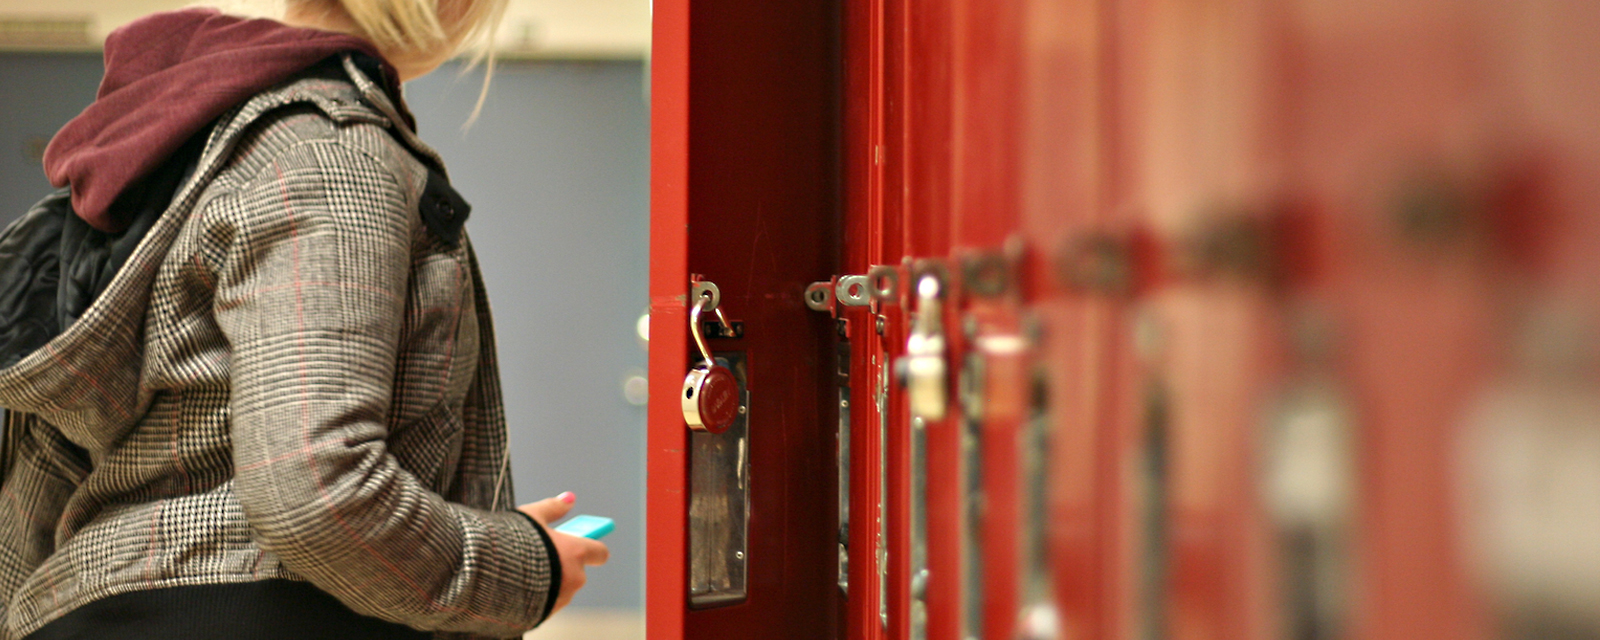 student at lockers